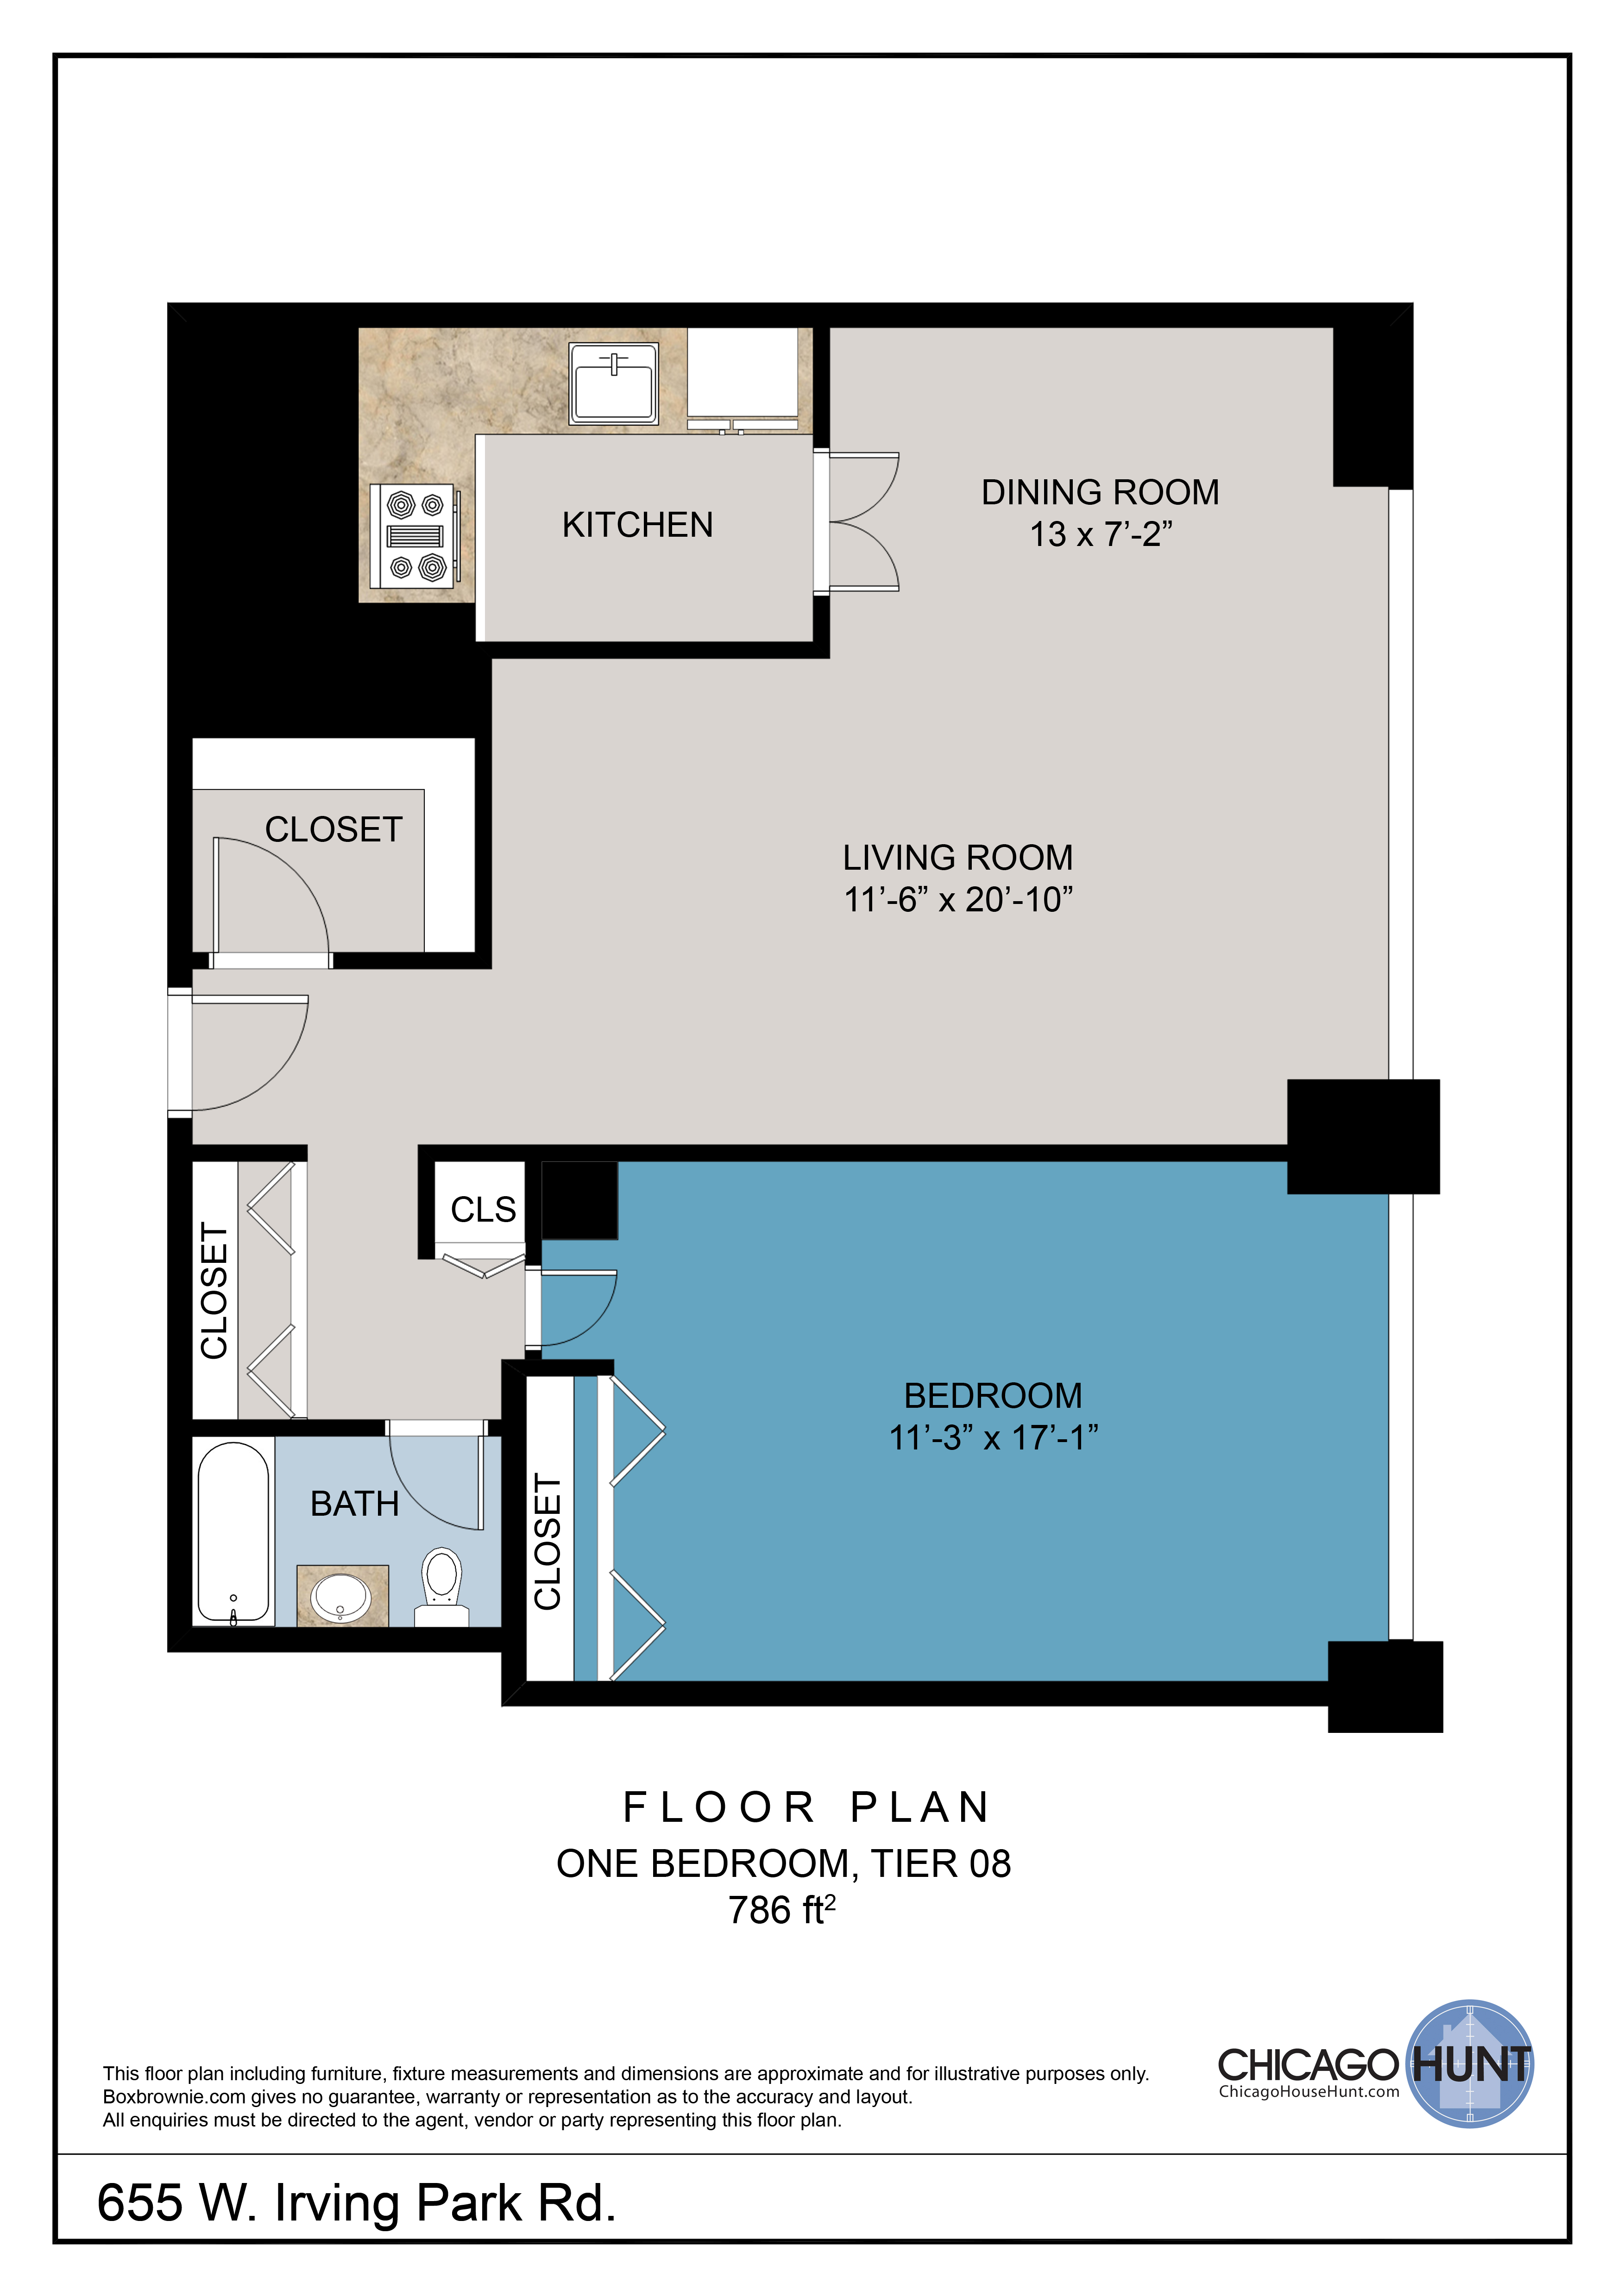 655 Irving Park, Park Place Towere - Floor Plan - Tier 08